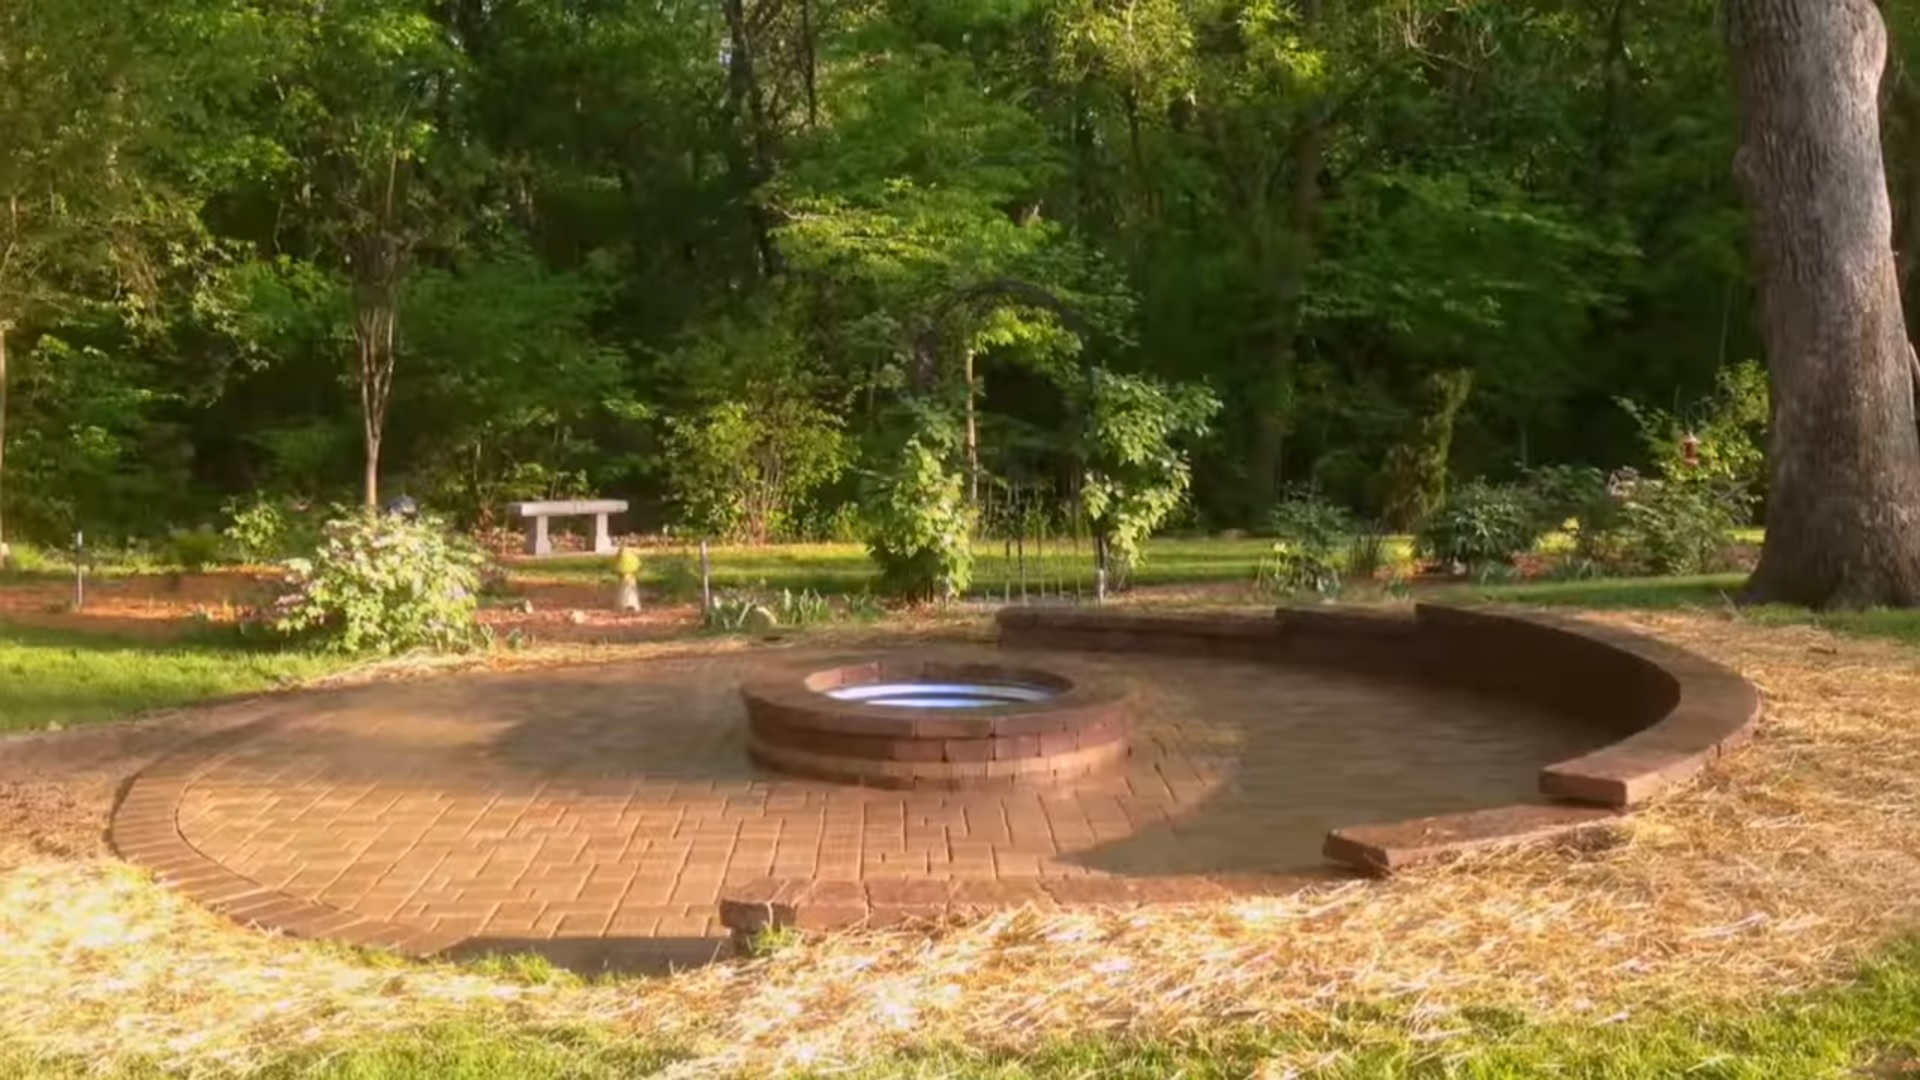 Patio Pavers   Marvin's Brick Pavers on Paver Patio With Fire Pit Ideas id=45147